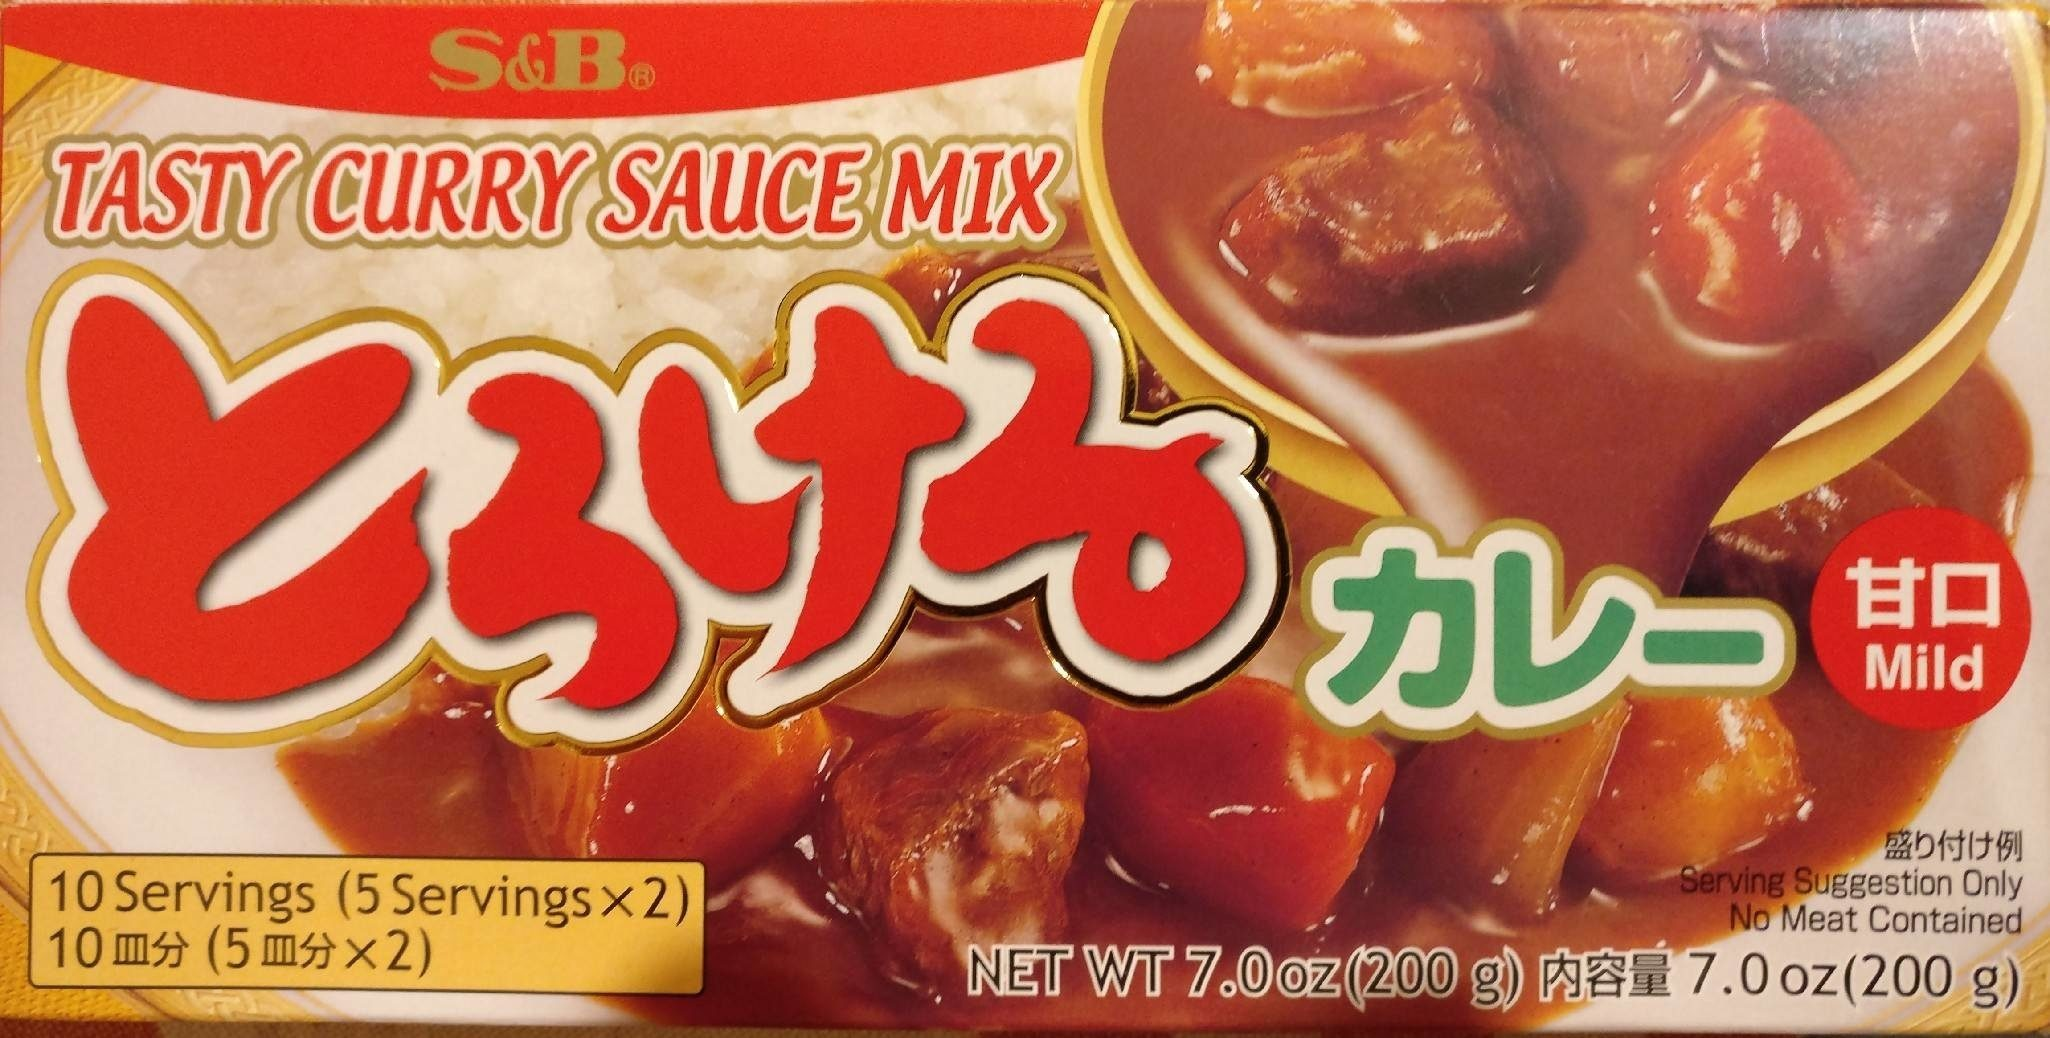 Tasty Curry Sauce Mix, Mild - Produit